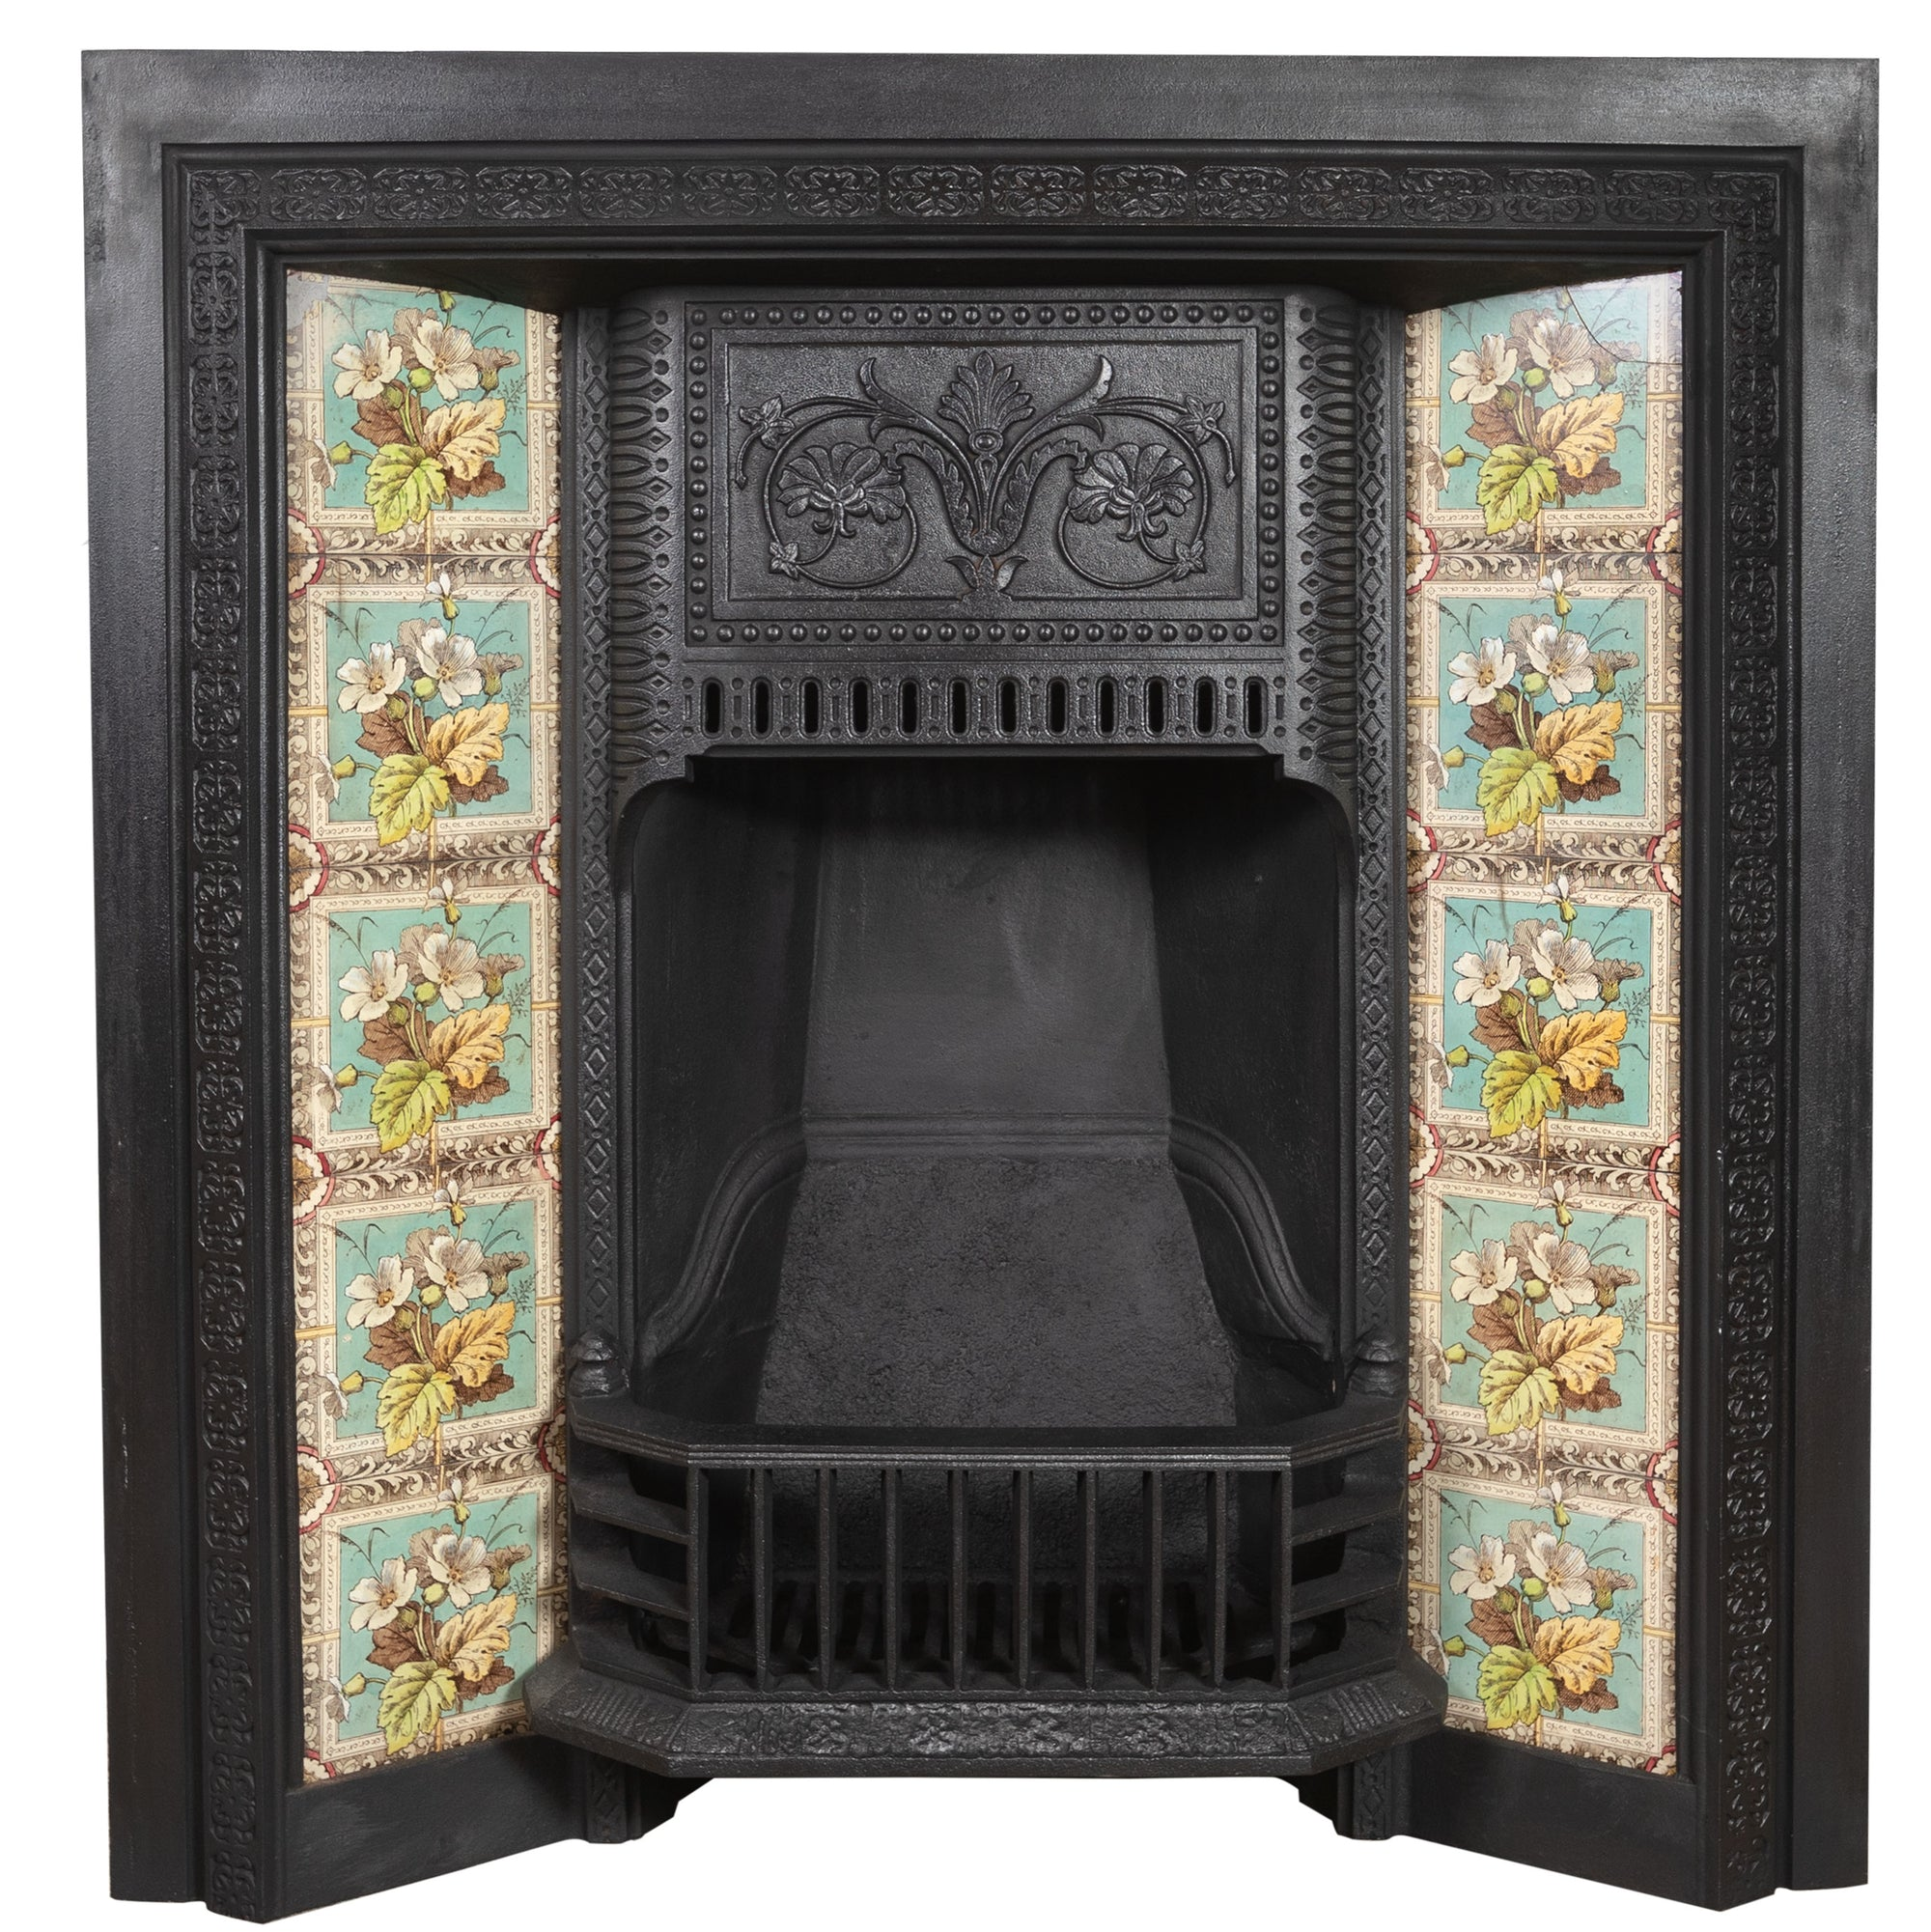 Antique Victorian Tiled Fireplace Insert - The Architectural Forum